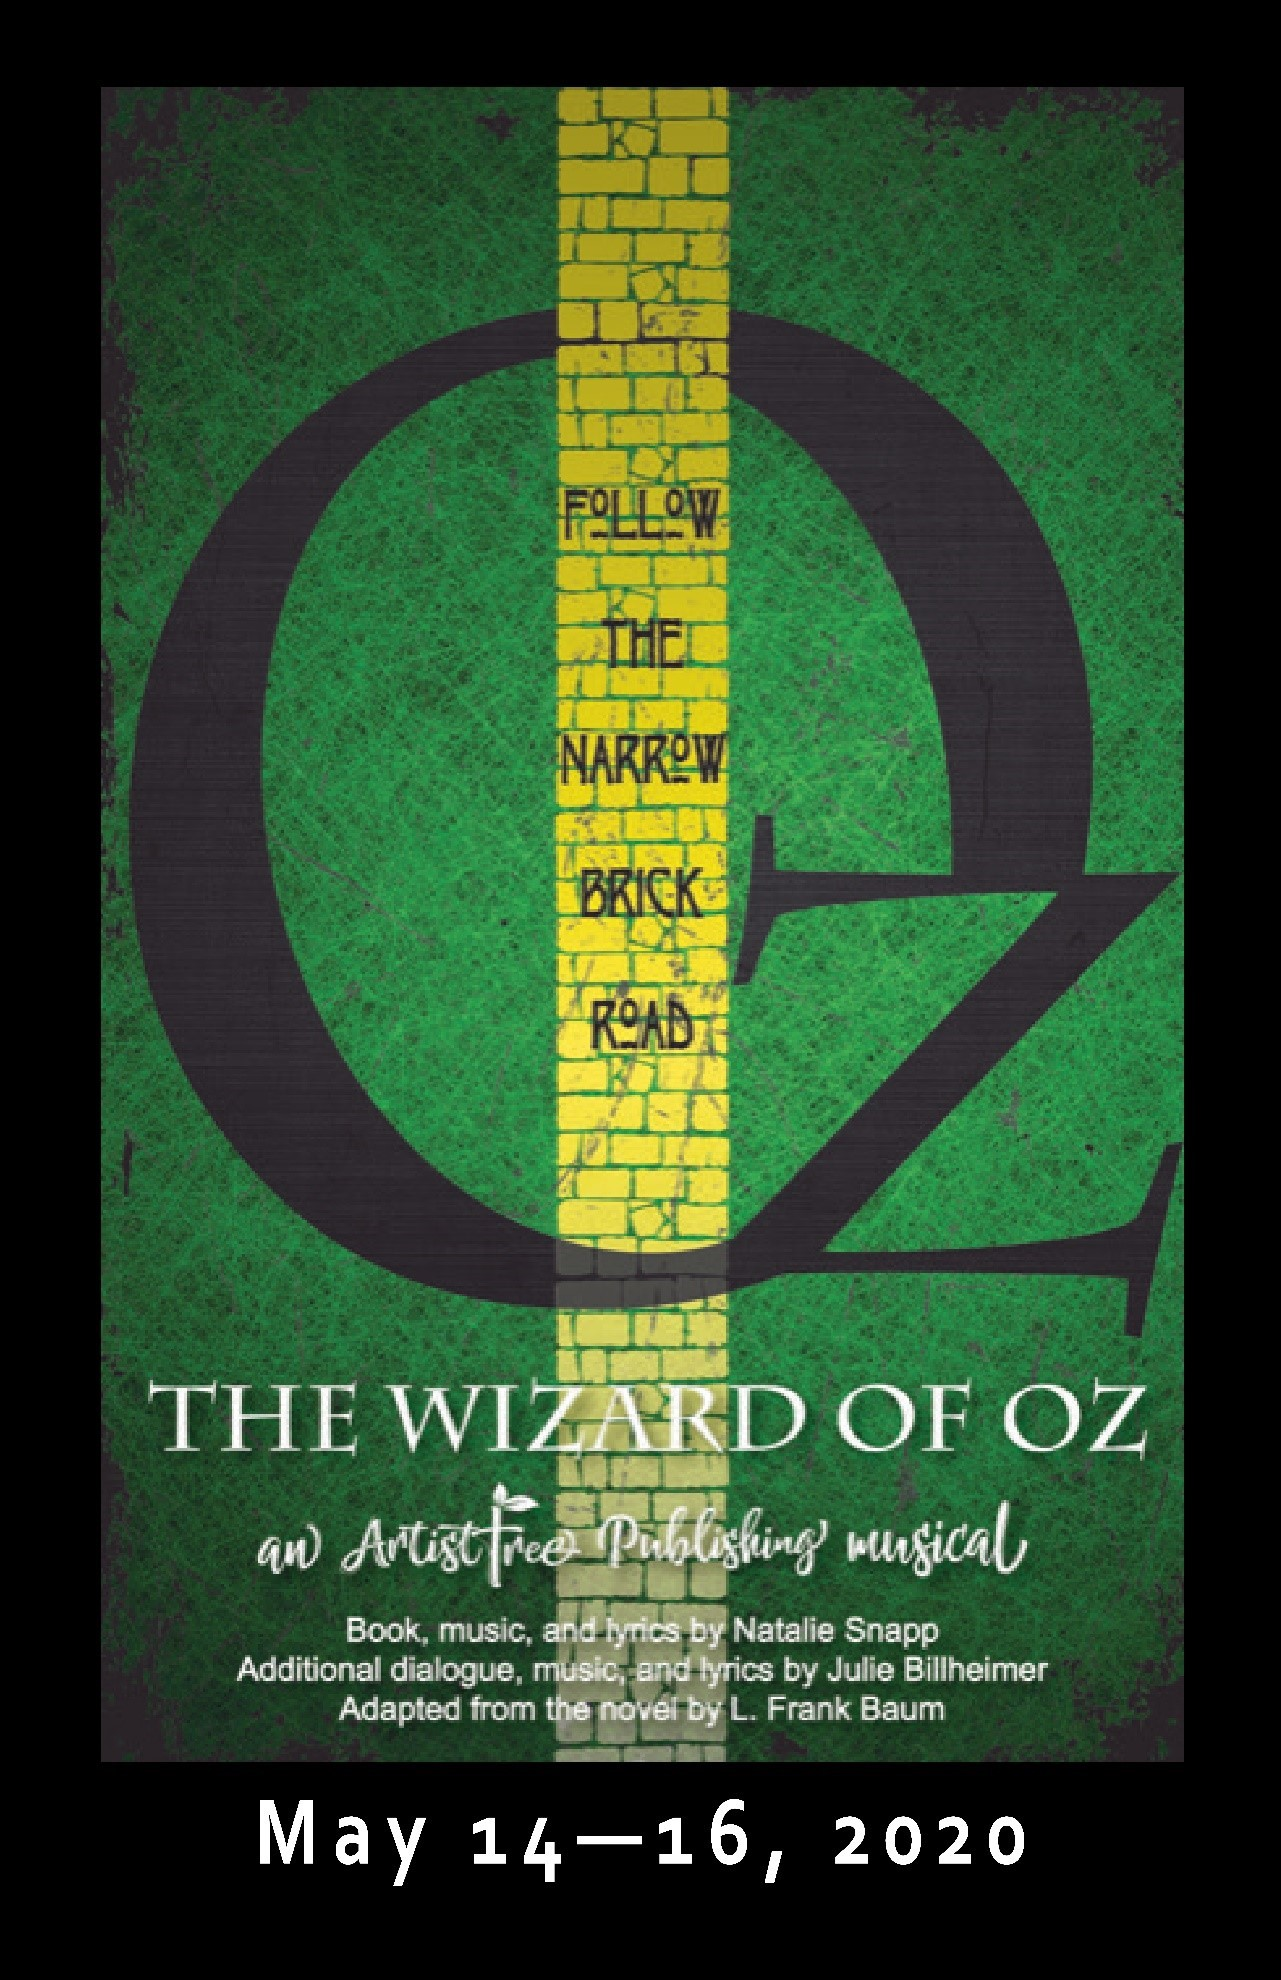 The Wizard of Oz Saturday, May 16, 2020 @ 2:00 pm on May 16, 14:00@Spiritual Twist Productions - Pick a seat, Buy tickets and Get information on Spiritual Twist Productions tickets.spiritualtwist.com